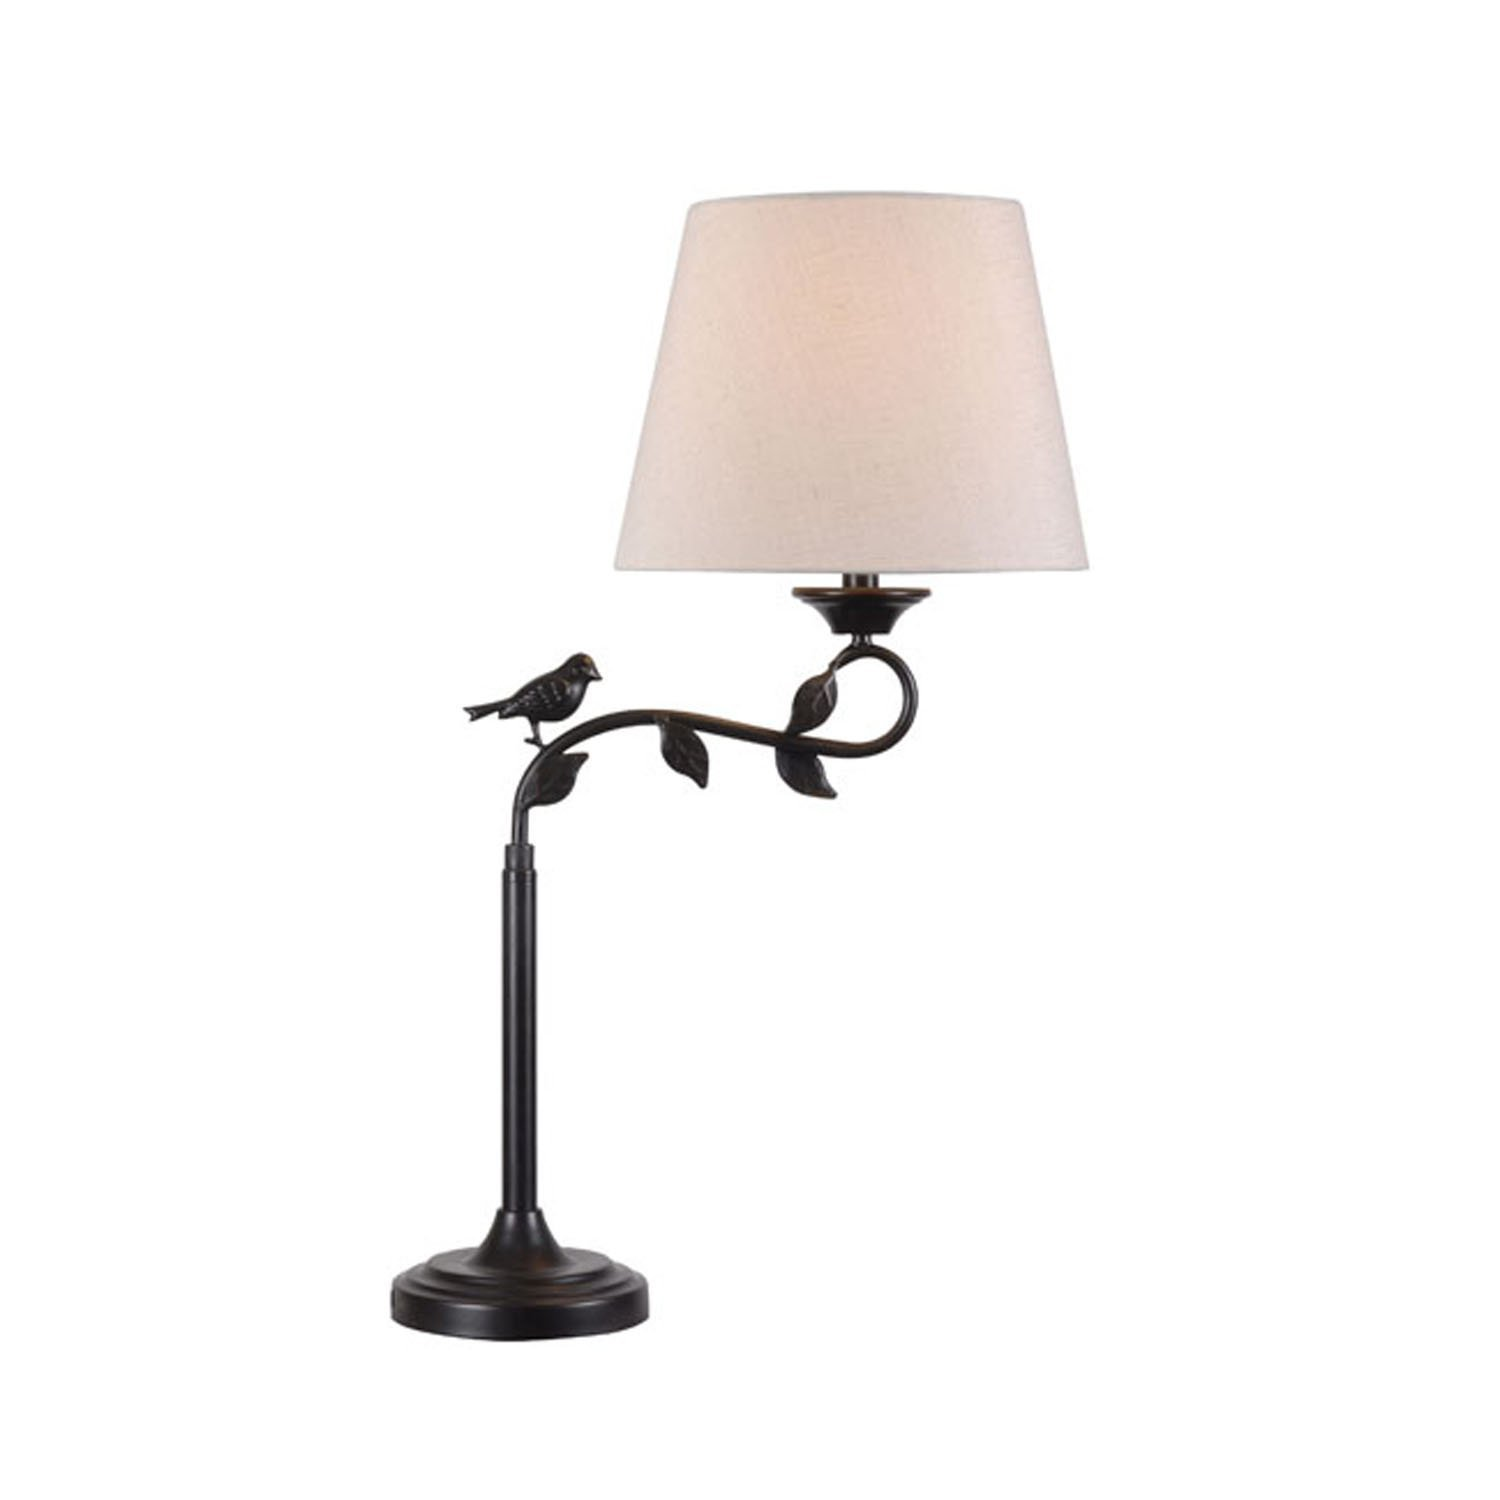 """Kenroy Home 32612ORB Birdsong Swing Arm Table Lamp, 7.48"""" x 30.5"""" x 19.25"""", Oil Rubbed Bronze Finish with Gold Highlights"""